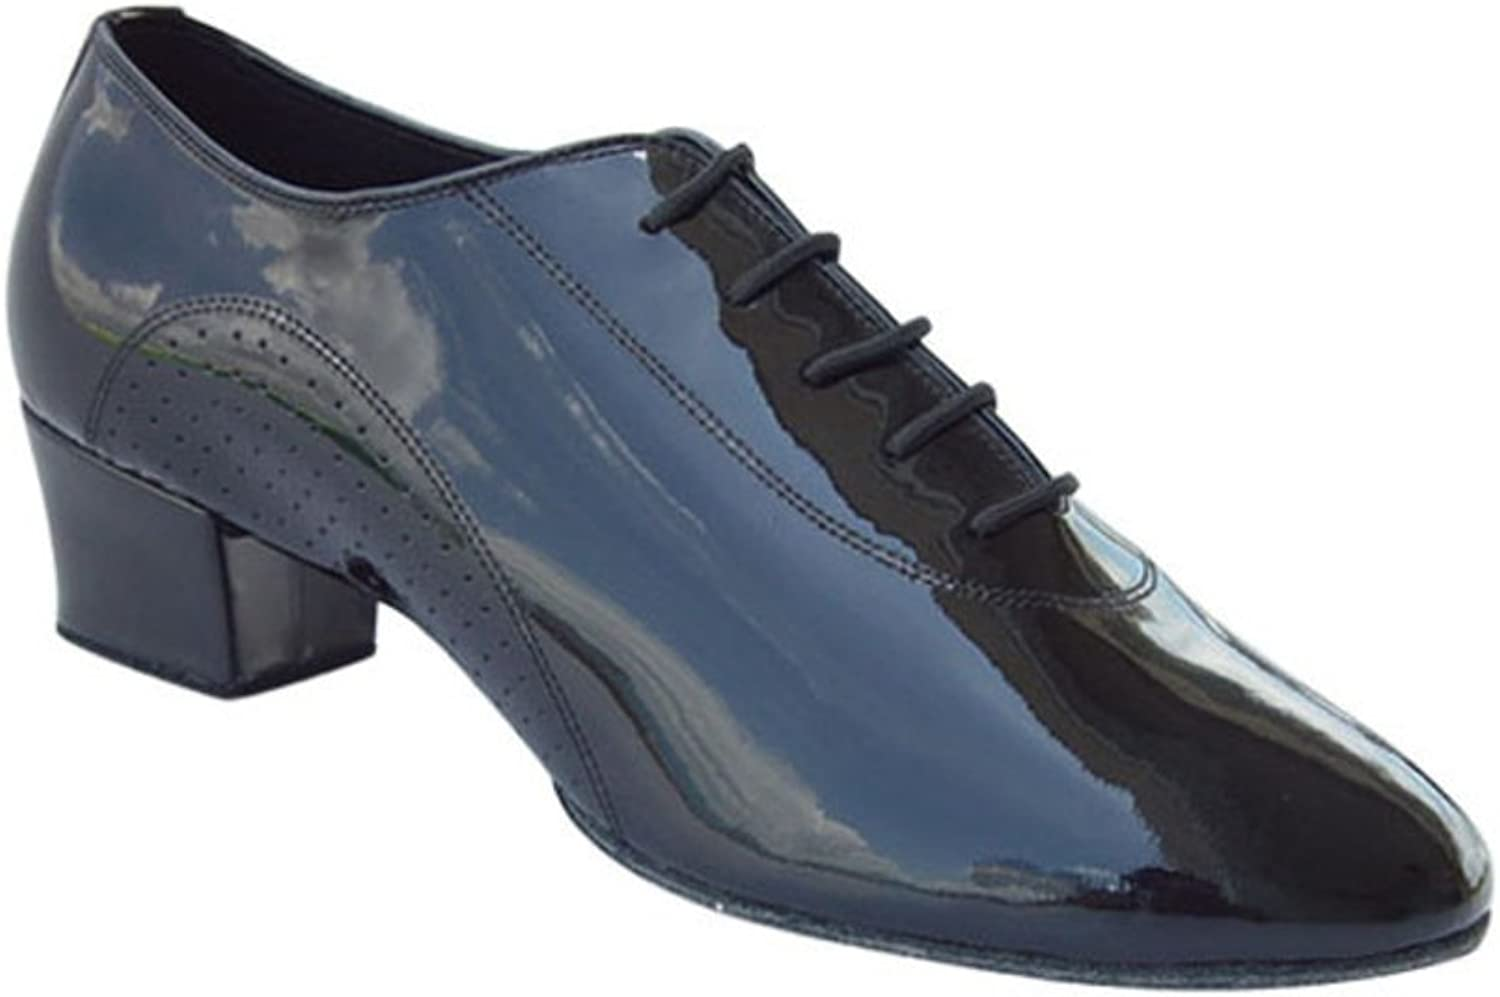 SPLNWTFHCNWPCB Men's Latin Dance shoes Soft Black Leather Dance shoes at The end of Adult Dance shoes